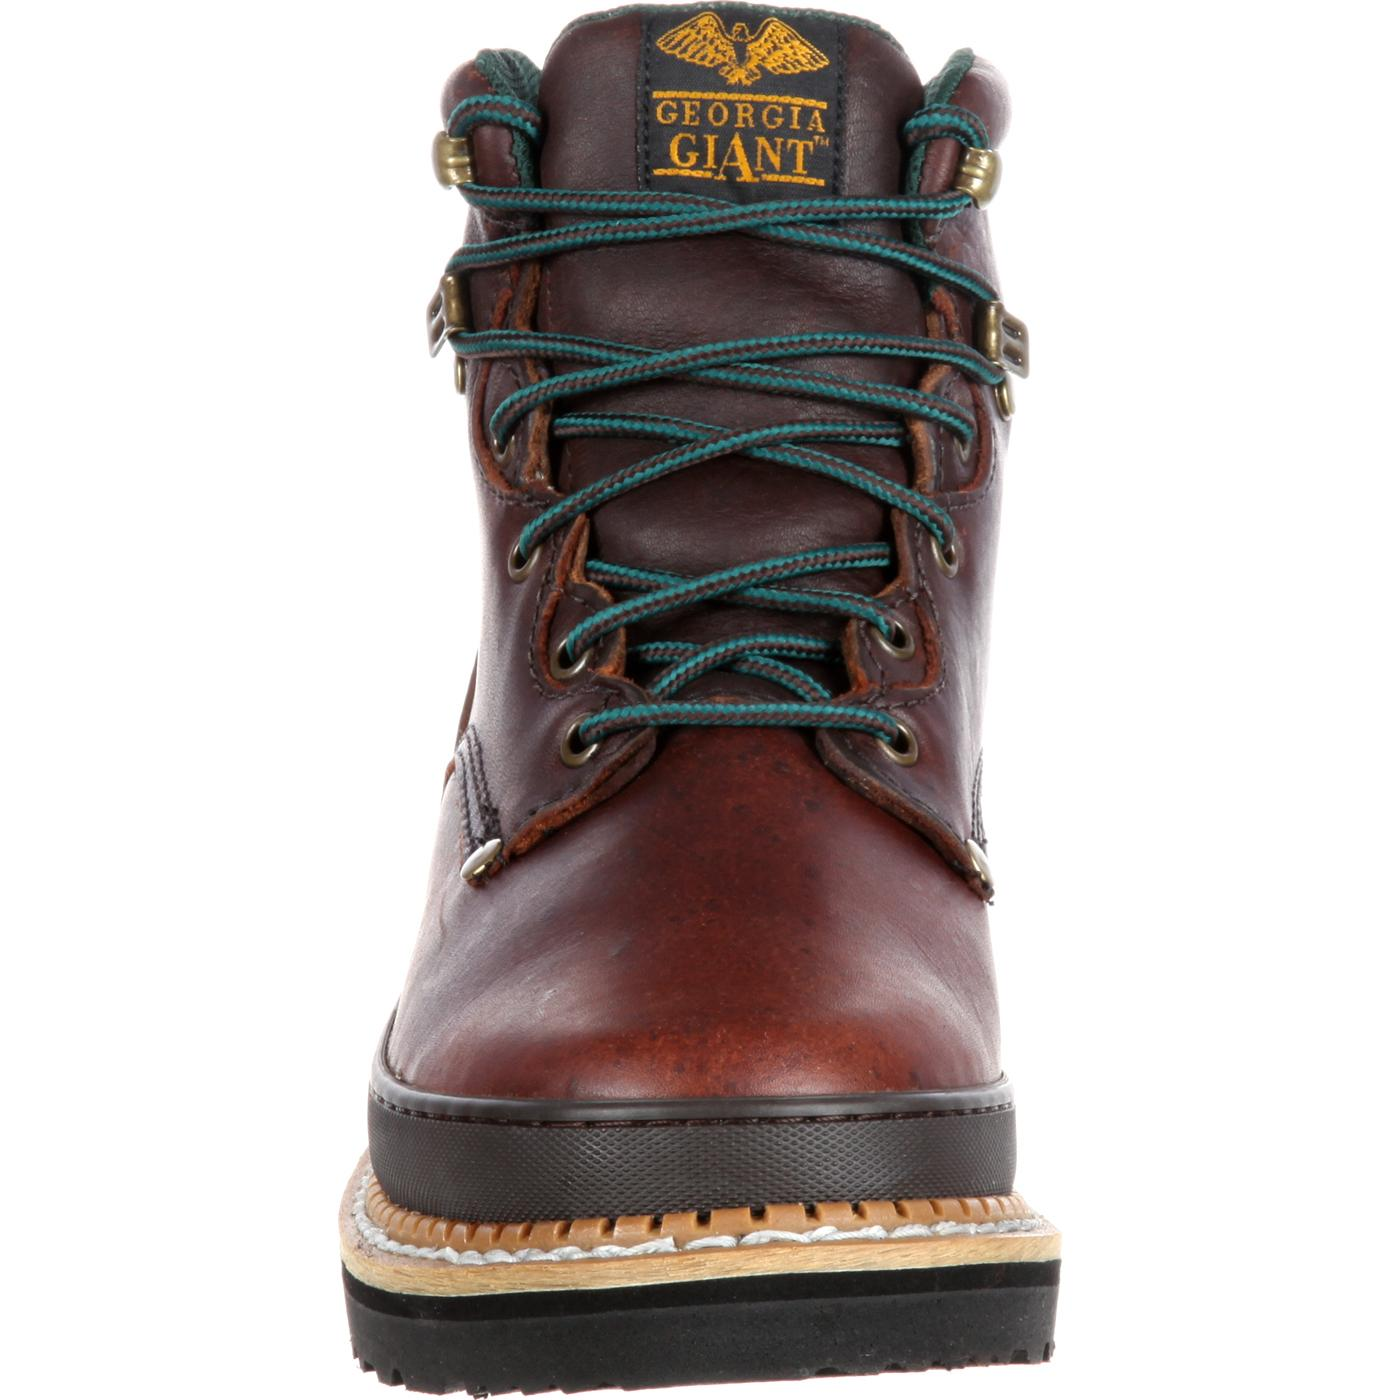 boots caterpillar giant mens comfortable boot cr in most about ga images voguish georgia romeo shoe comfy toe work comforter large booton steel